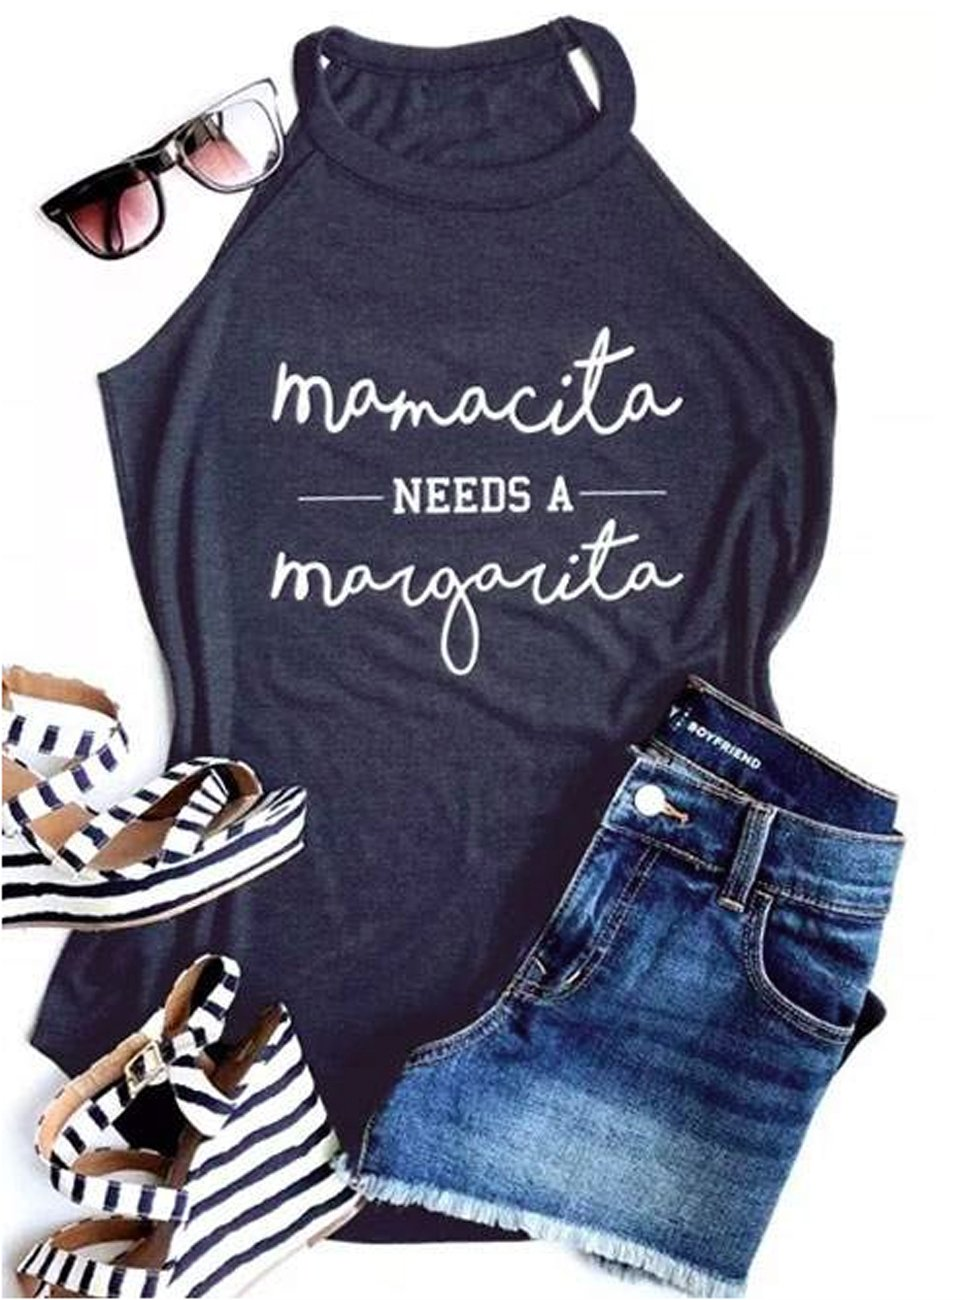 Mamacita Needs a Margarita Funny Tank Tops Women Crew Neck Sleeveless Shirt Cami Size L (Gray) by FAYALEQ (Image #1)